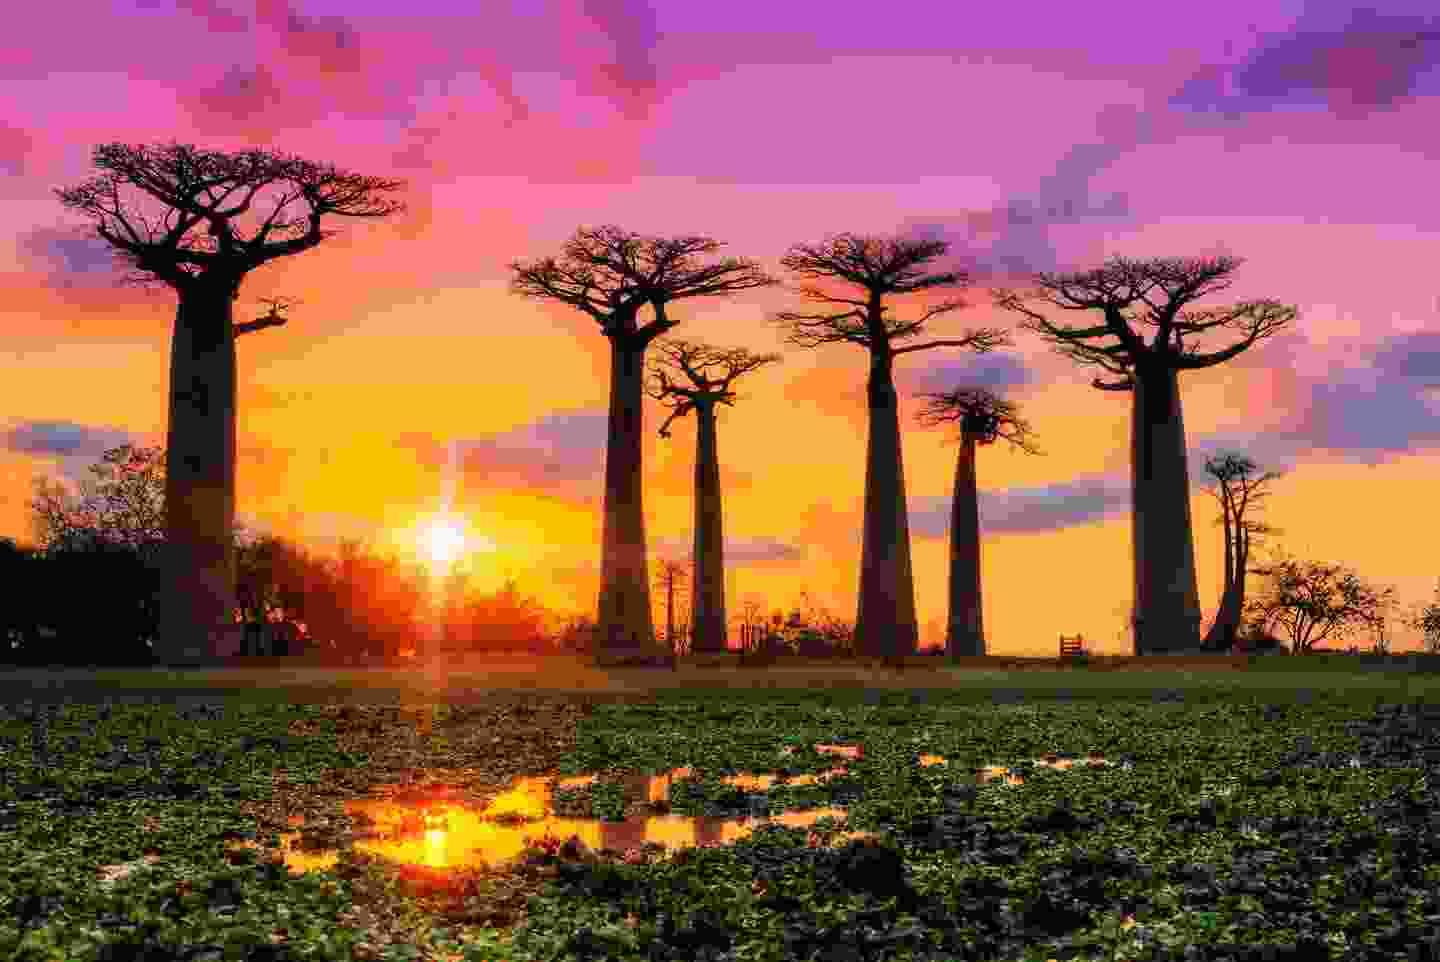 Baobab trees in Madagascar at sunset (Shutterstock)